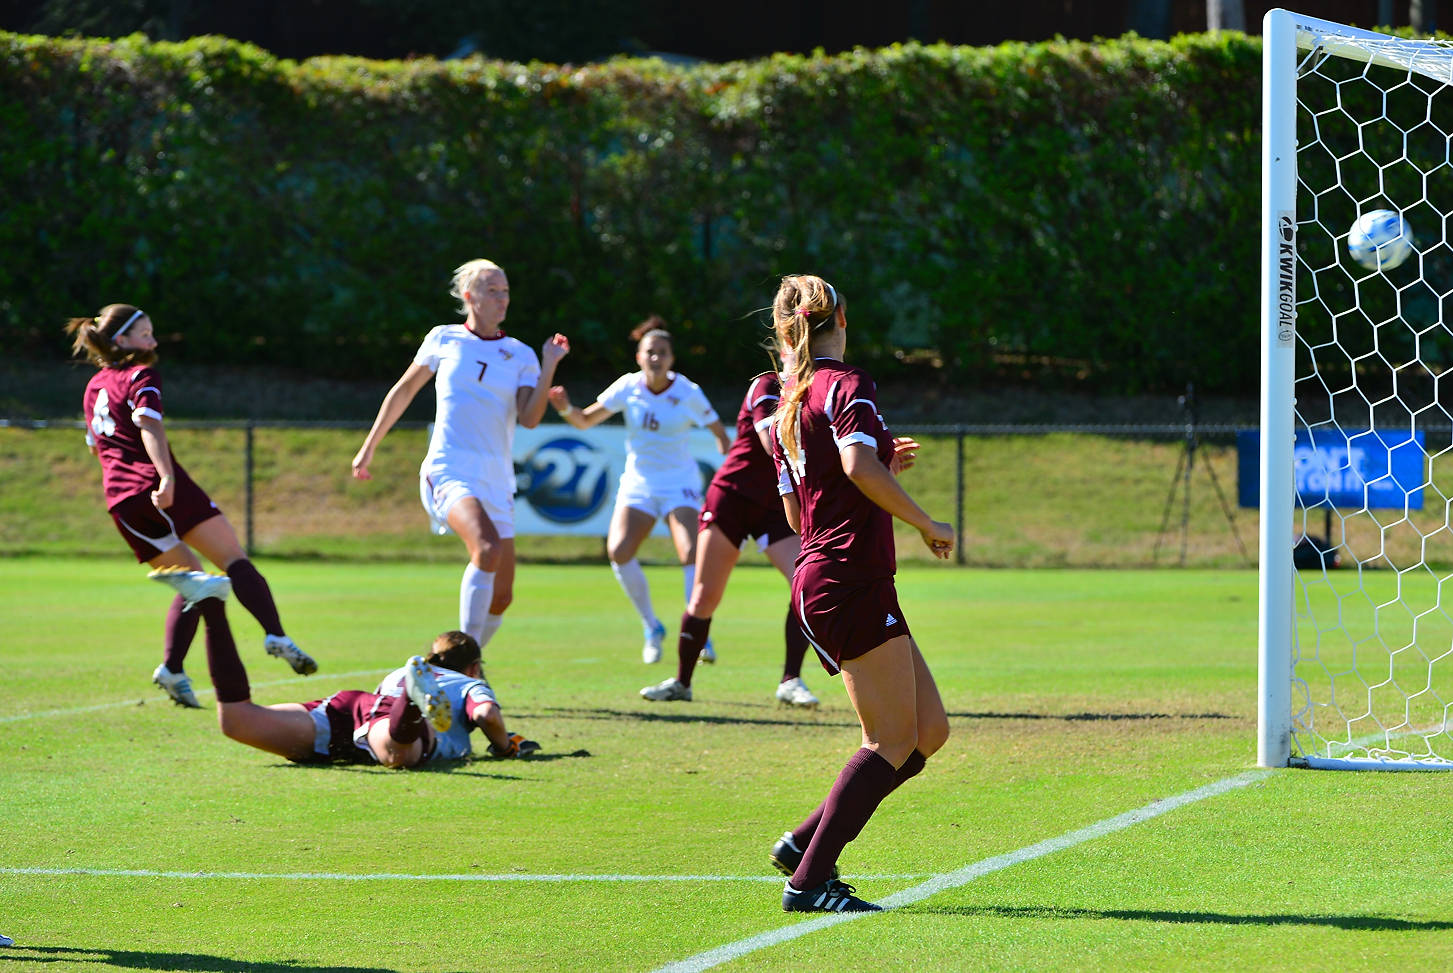 Dagny Brynjarsdottir puts away the cross from Tiffany McCarty to give FSU a 2-0 lead.